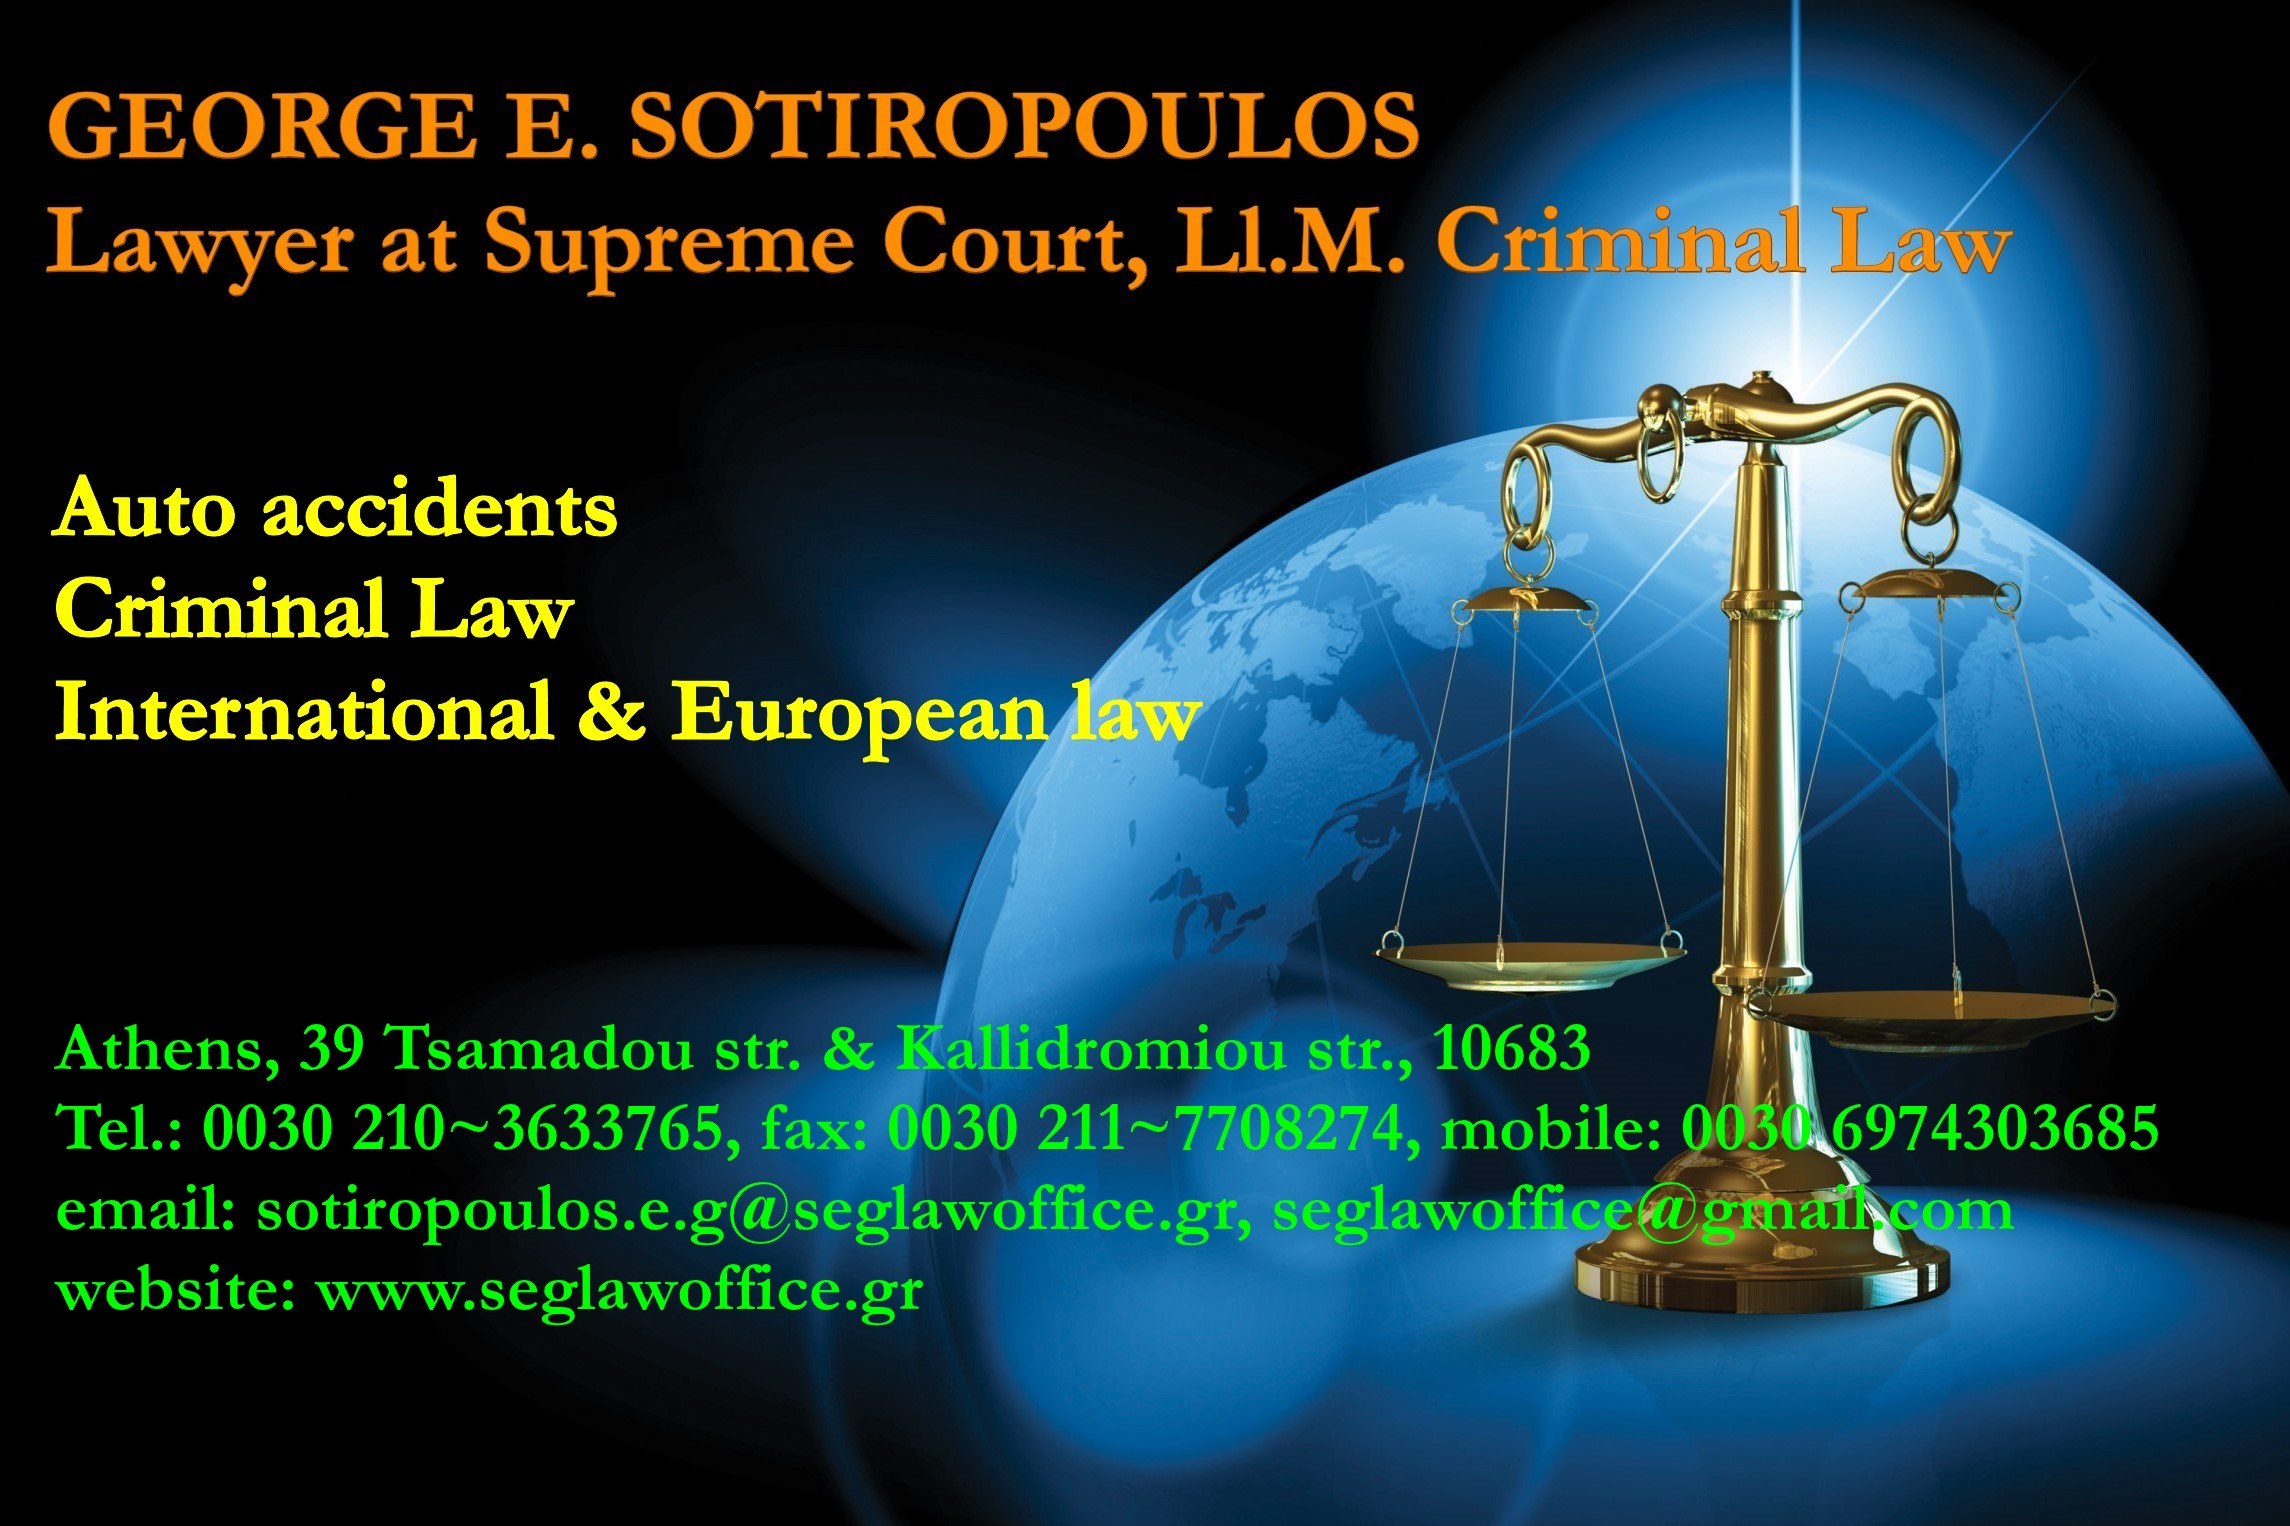 lawyer, attorney, accidents, criminal law, international law, european law, George Sotiropoulos, www.seglawoffice.gr